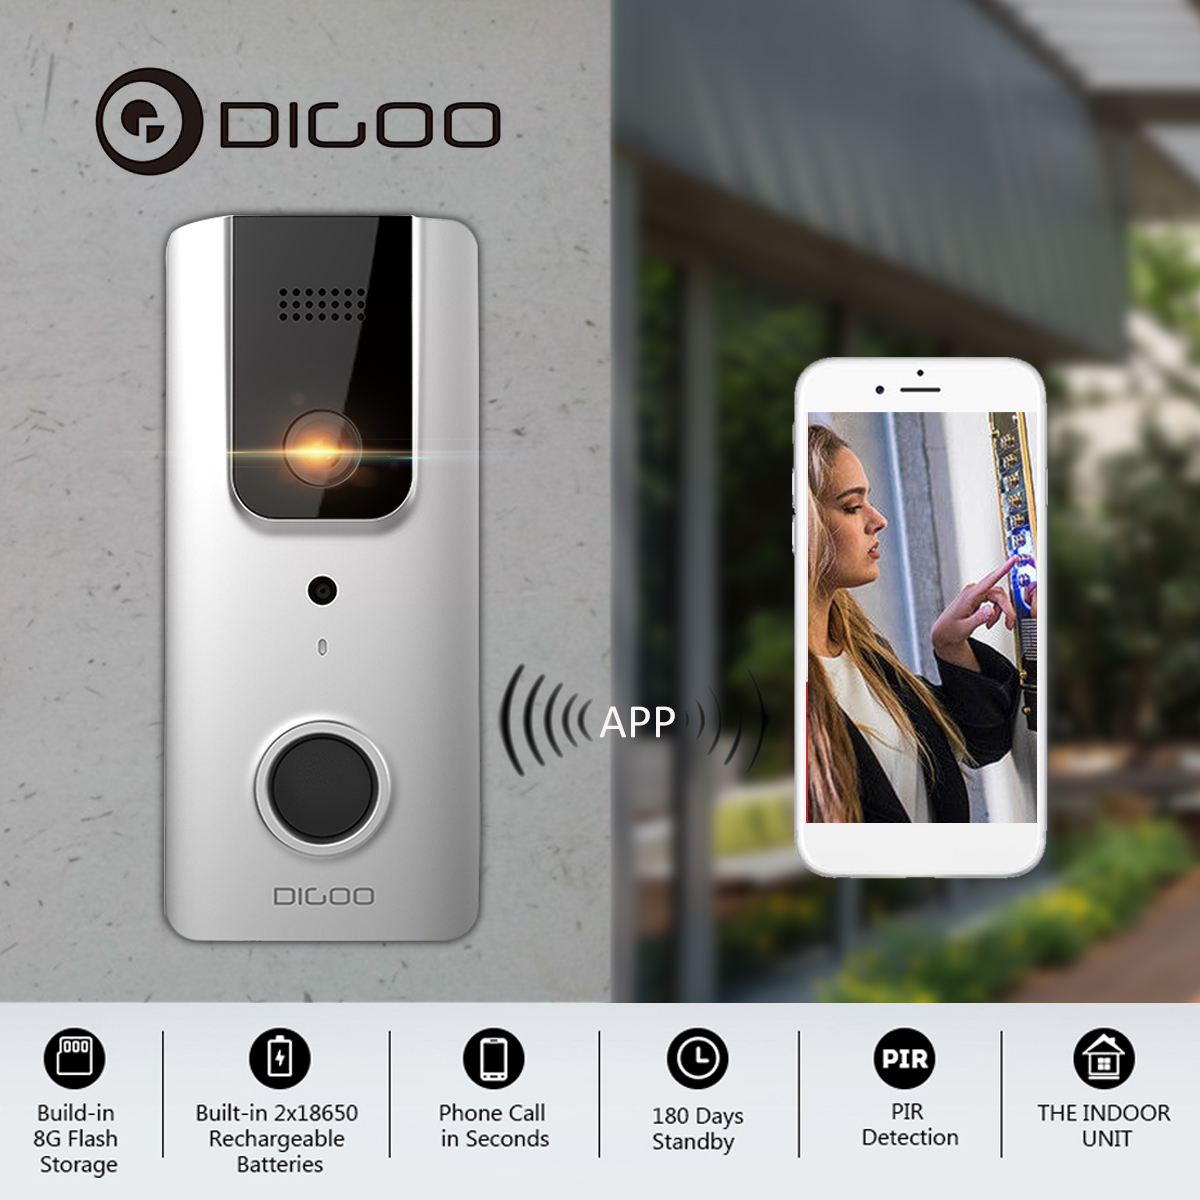 DIGOO SB-XYA 5 in 1 Video Wifi Doorbell with PIR Motion Detection,HD 1080P Camera Image,Free App Control,Night Vision,Two-Way Talk,Phone Ring,Cloud Service,Waterproof IPX6